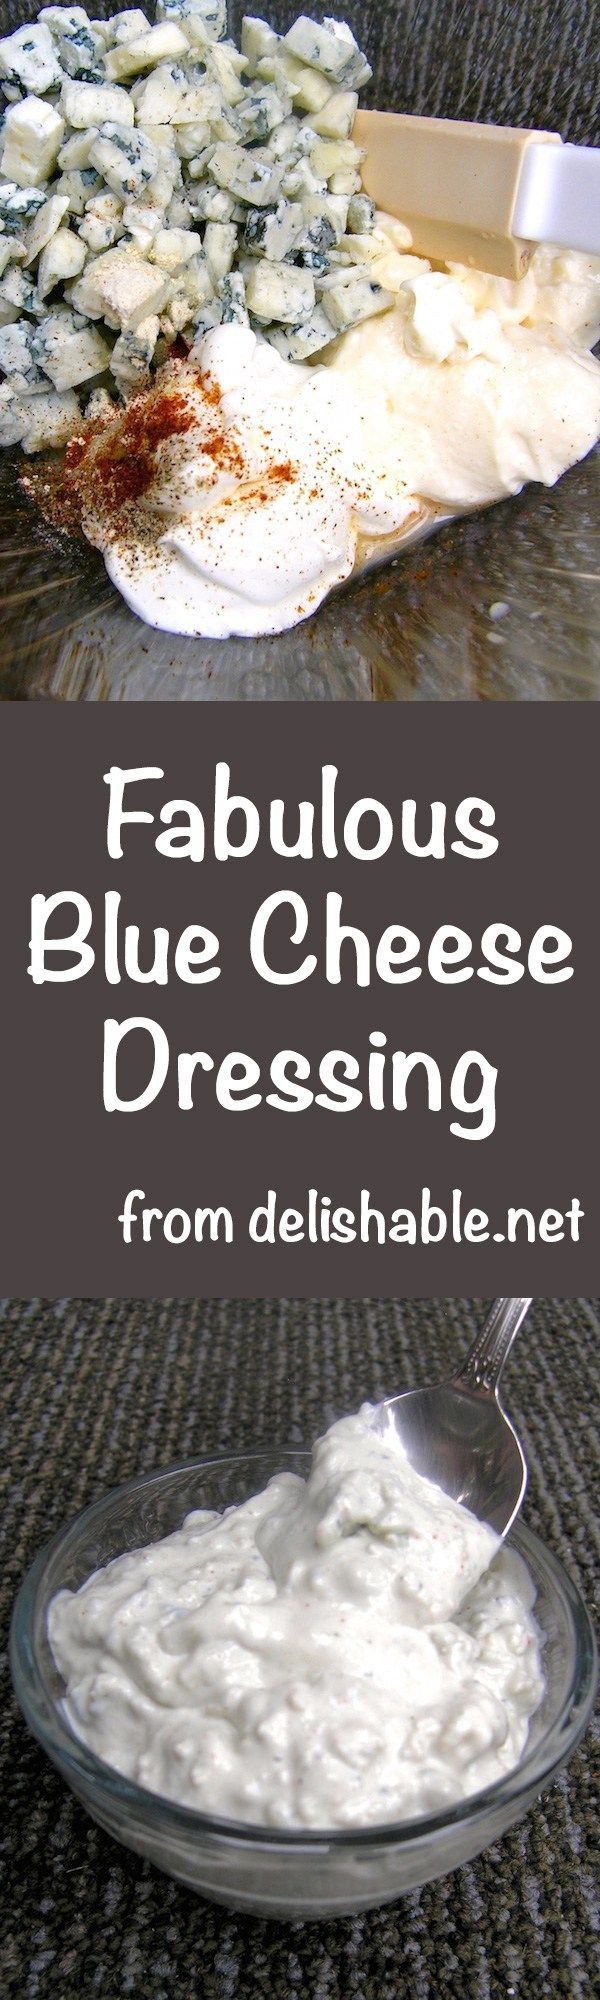 Calories in homemade blue cheese dressing